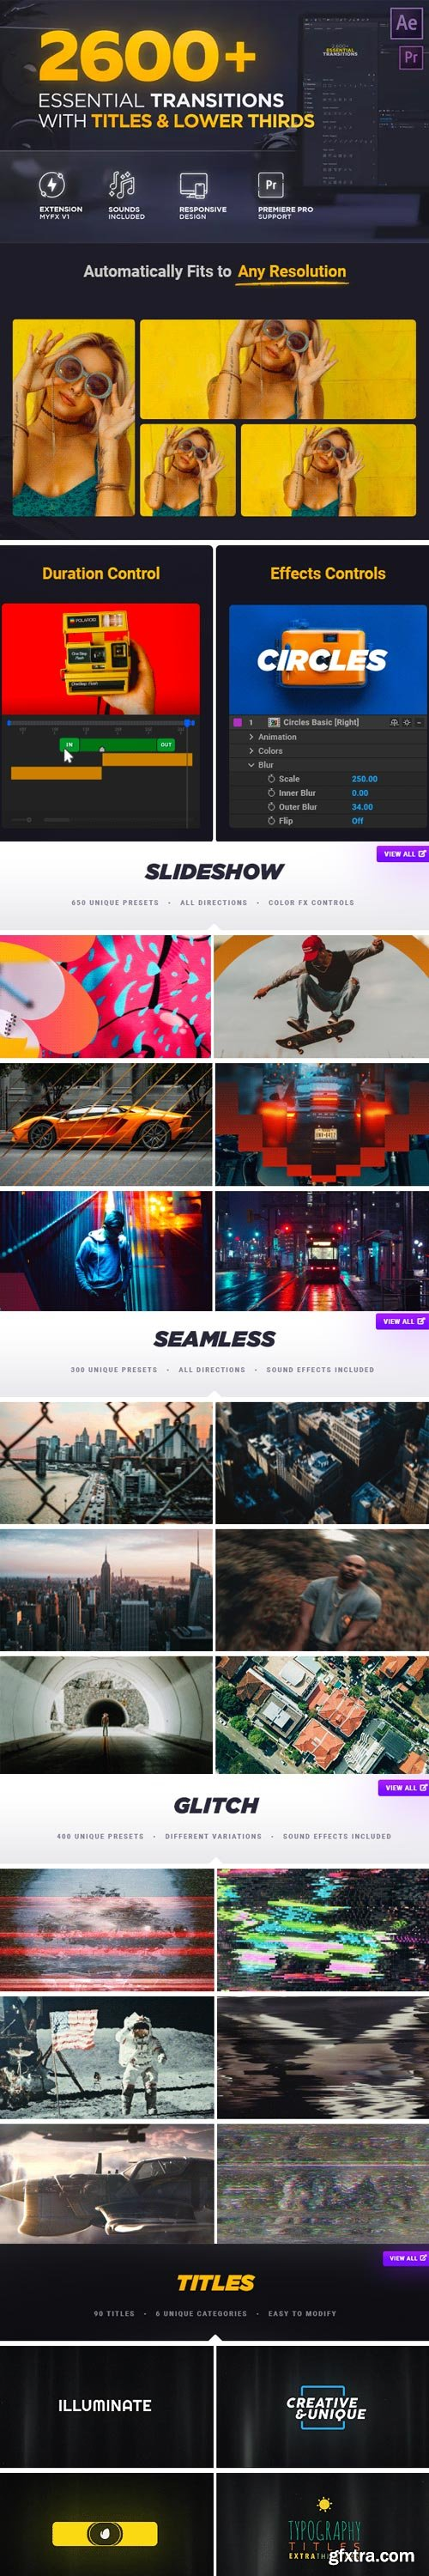 Videohive - Transitions V3 ( Last Update 19 May 20 ) - 20139771